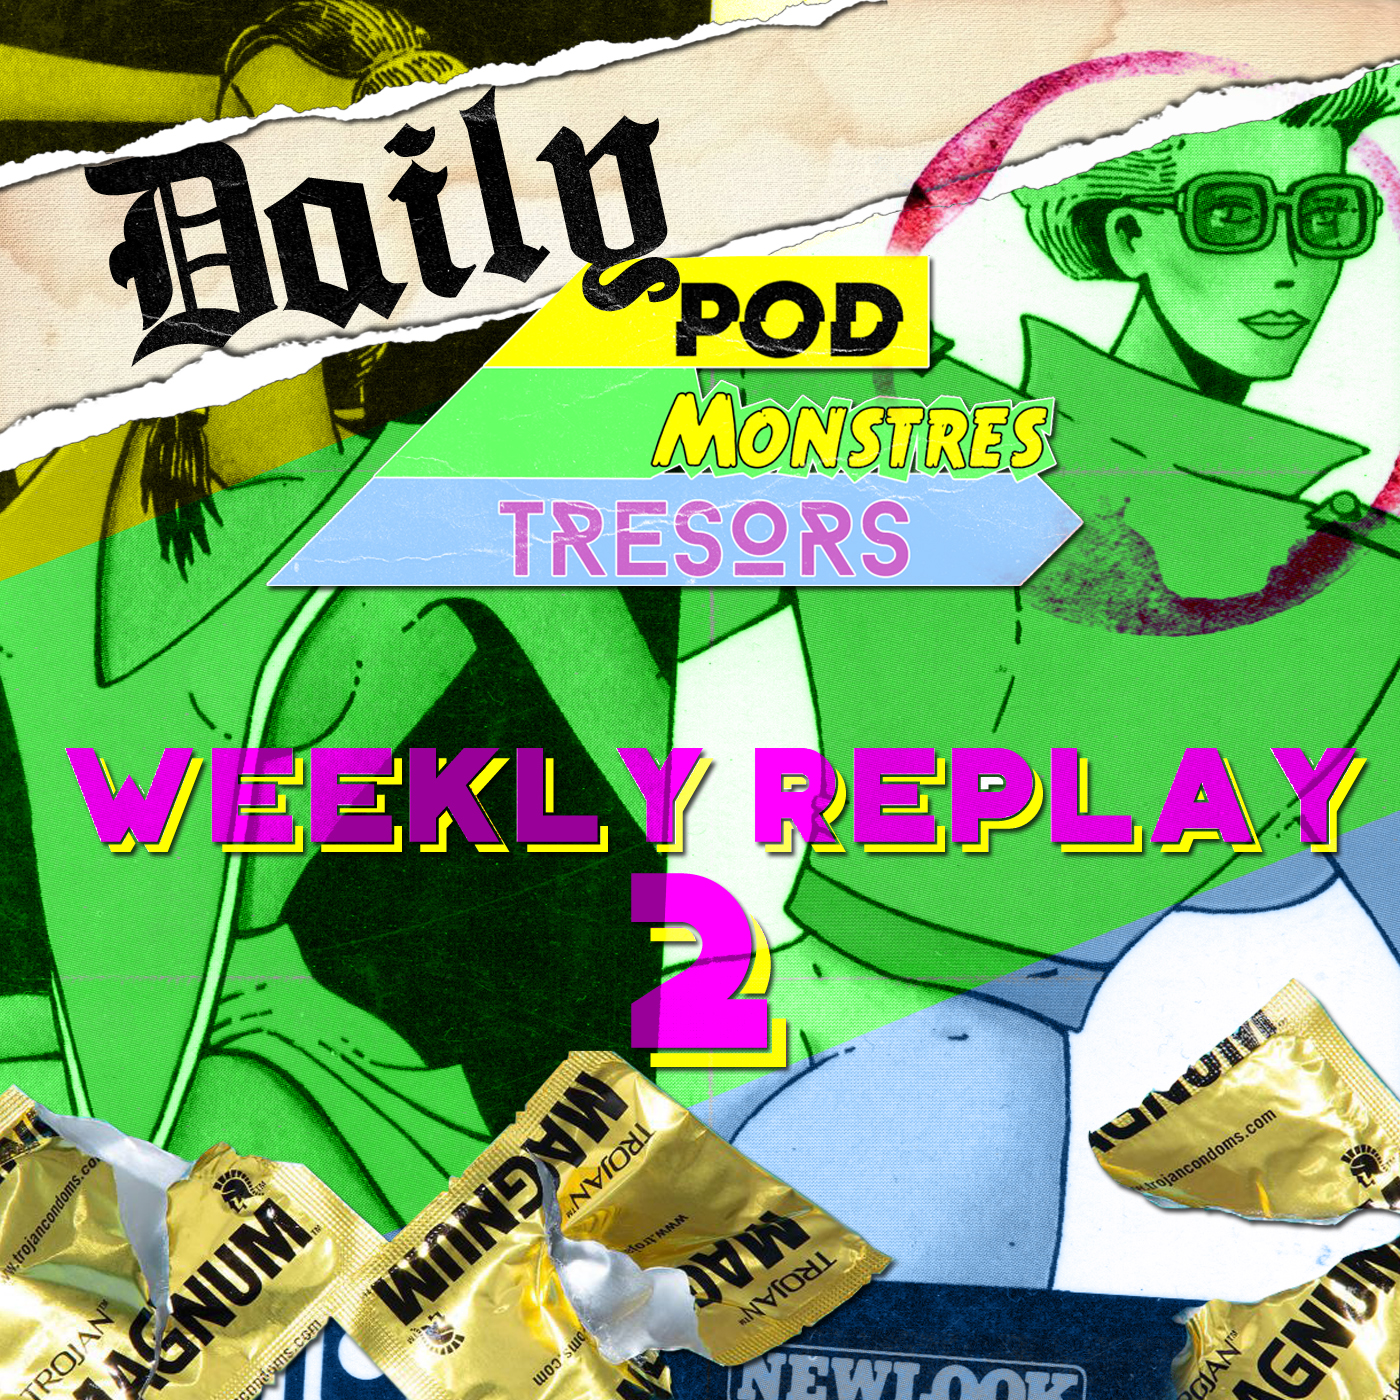 Daily Pod Monstres Trésors : Mexico Melody – Le Weekly Replay 2